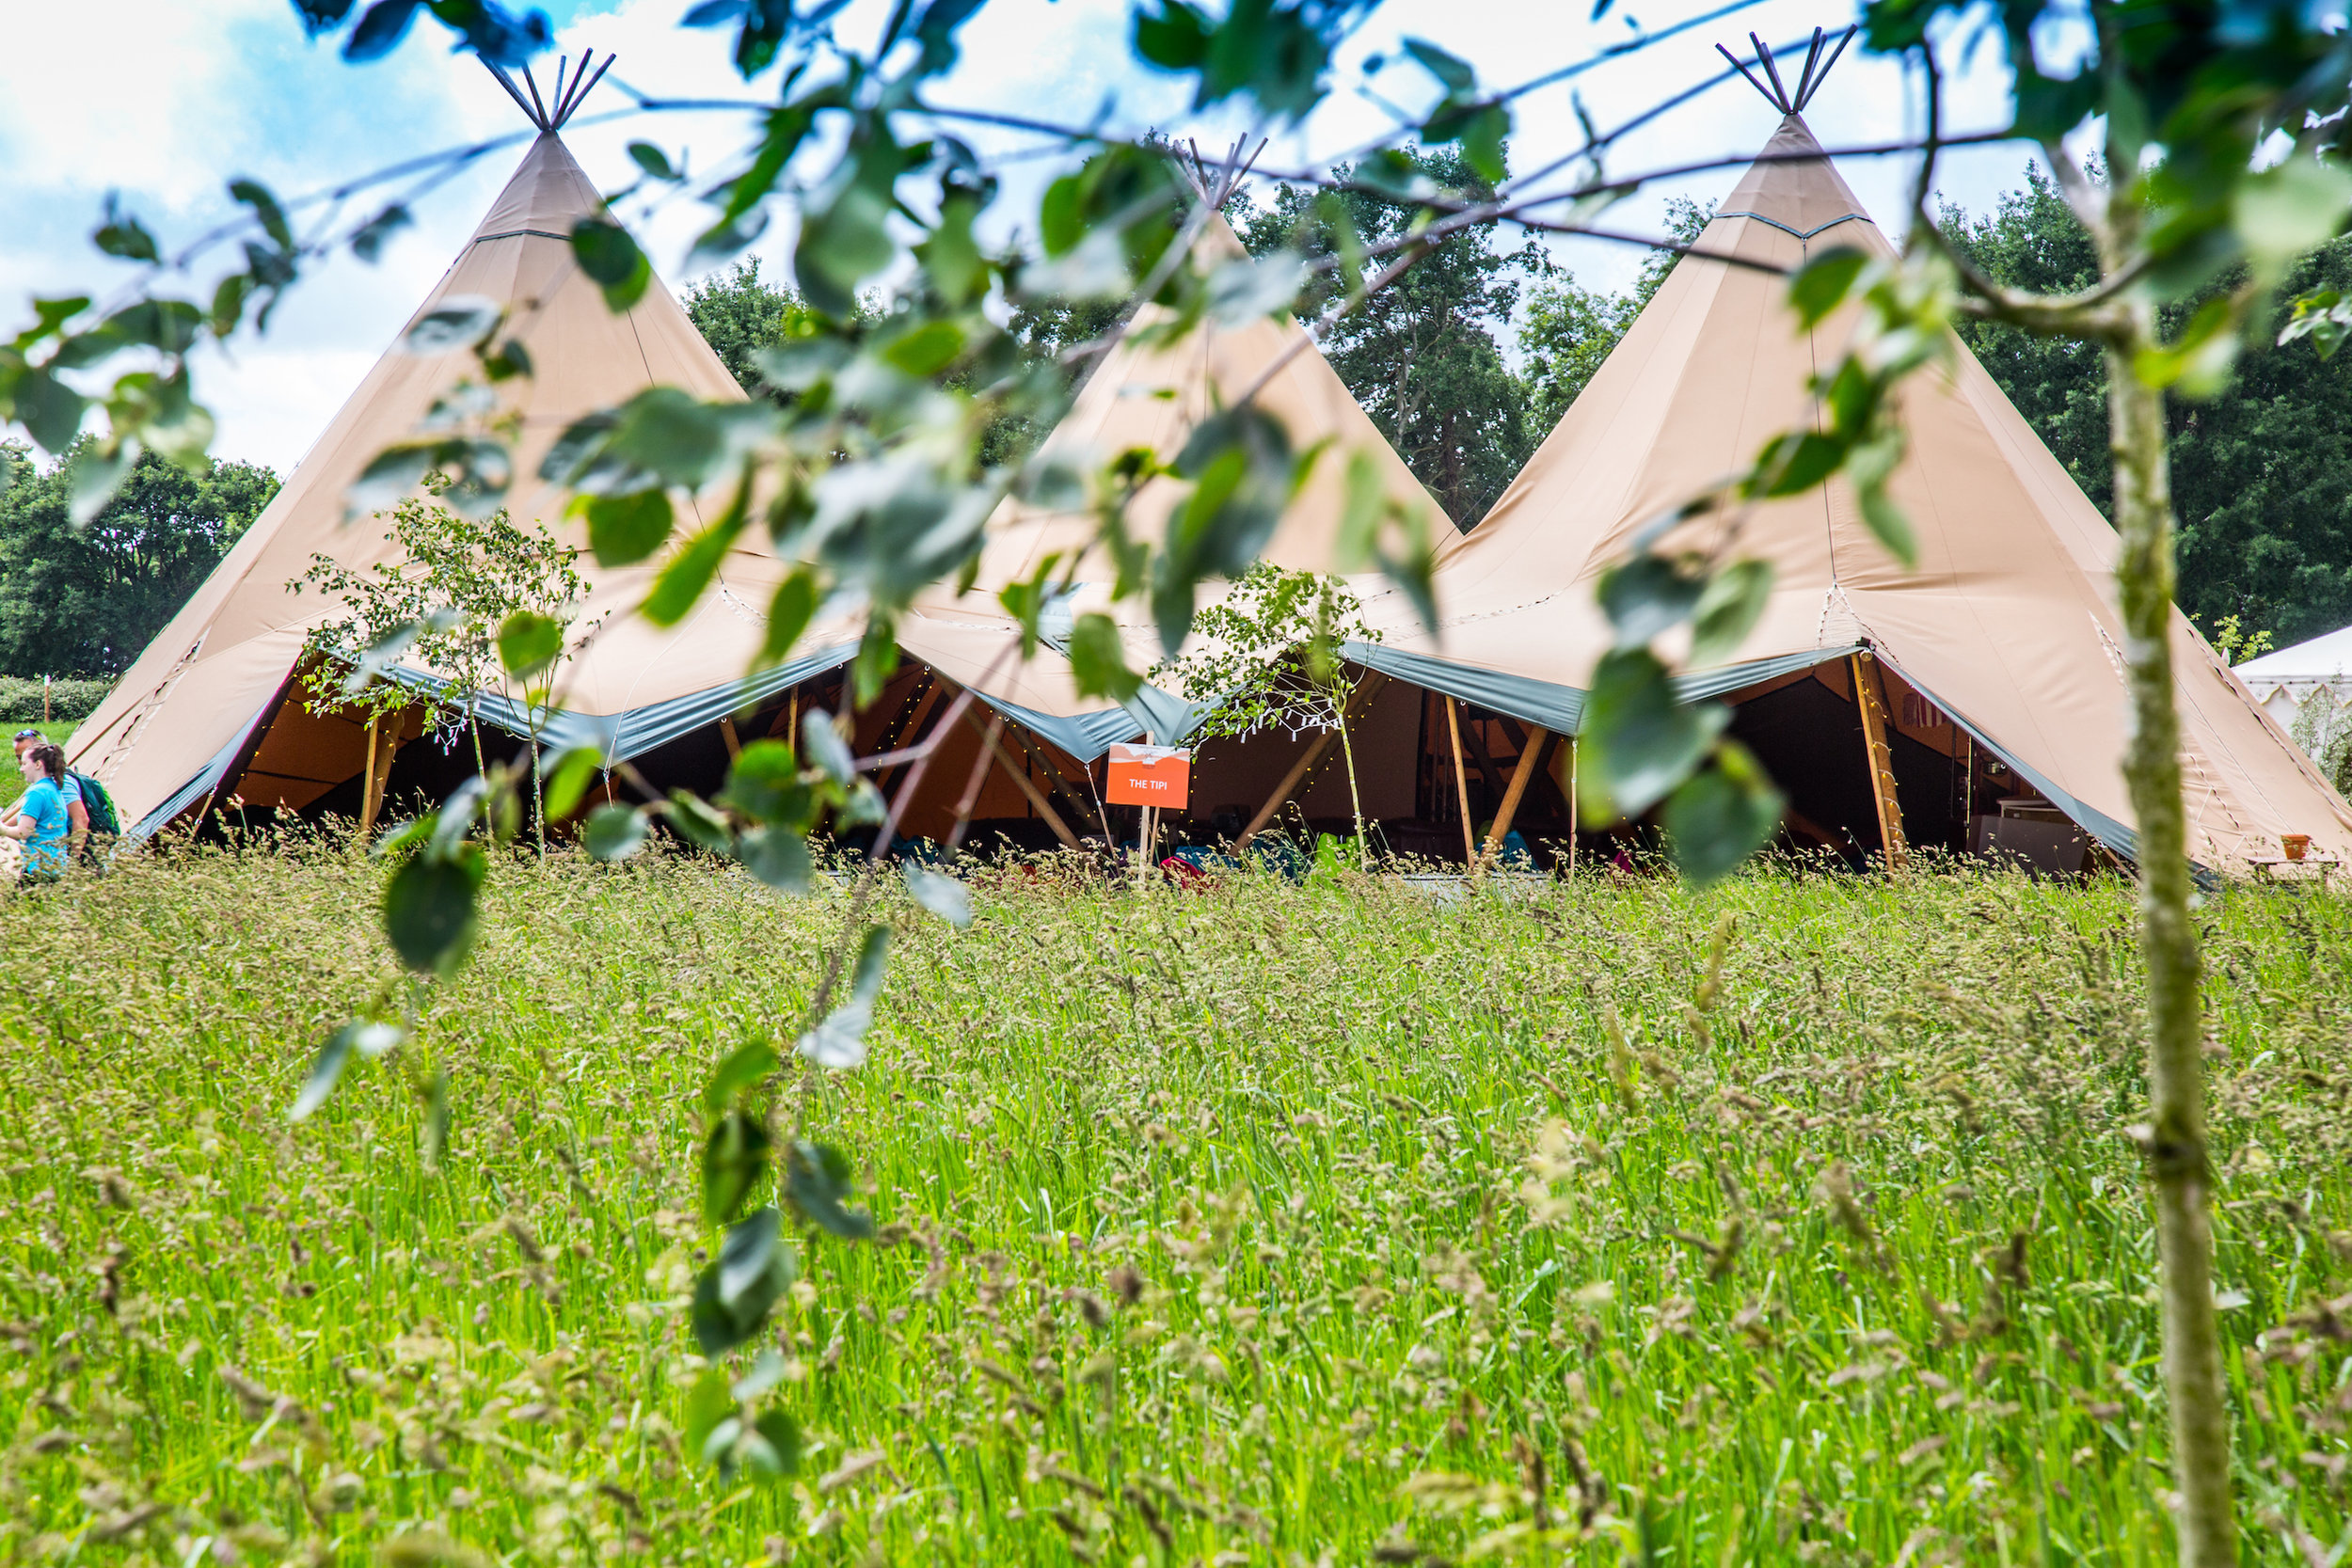 The Big Tipi Experience